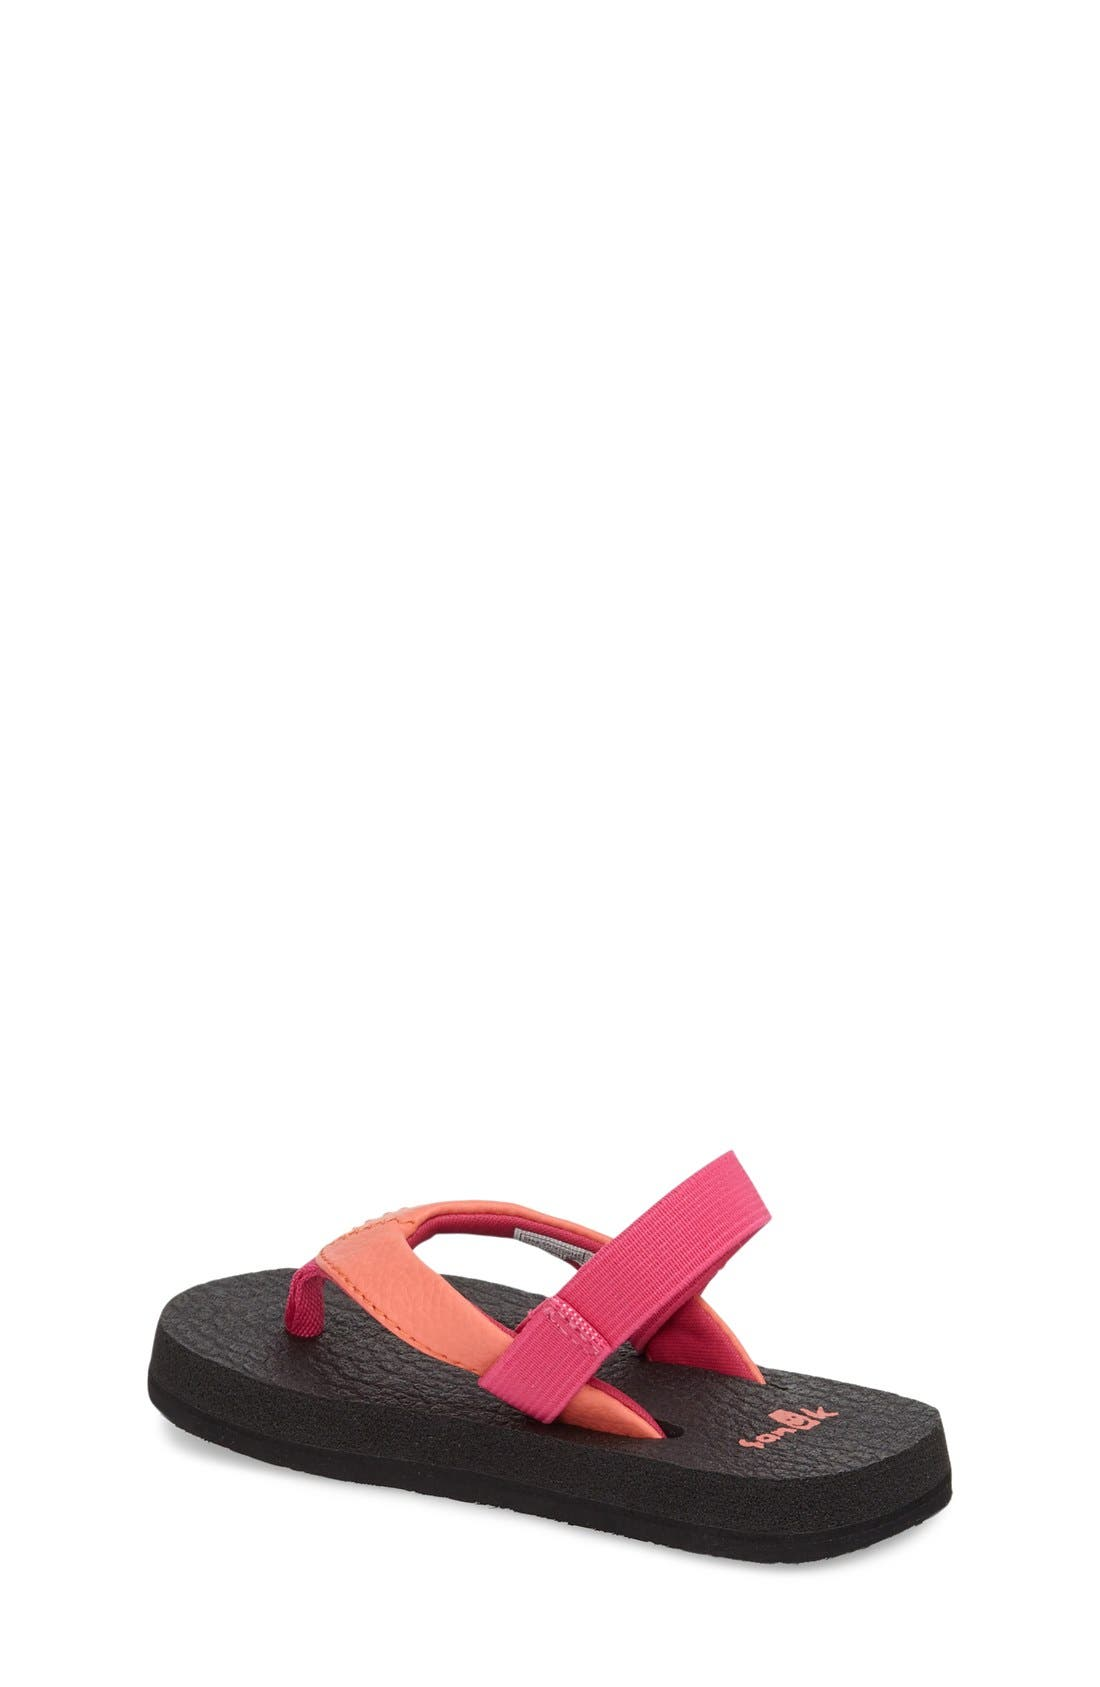 'Yoga Mat' Sandal,                             Alternate thumbnail 2, color,                             833